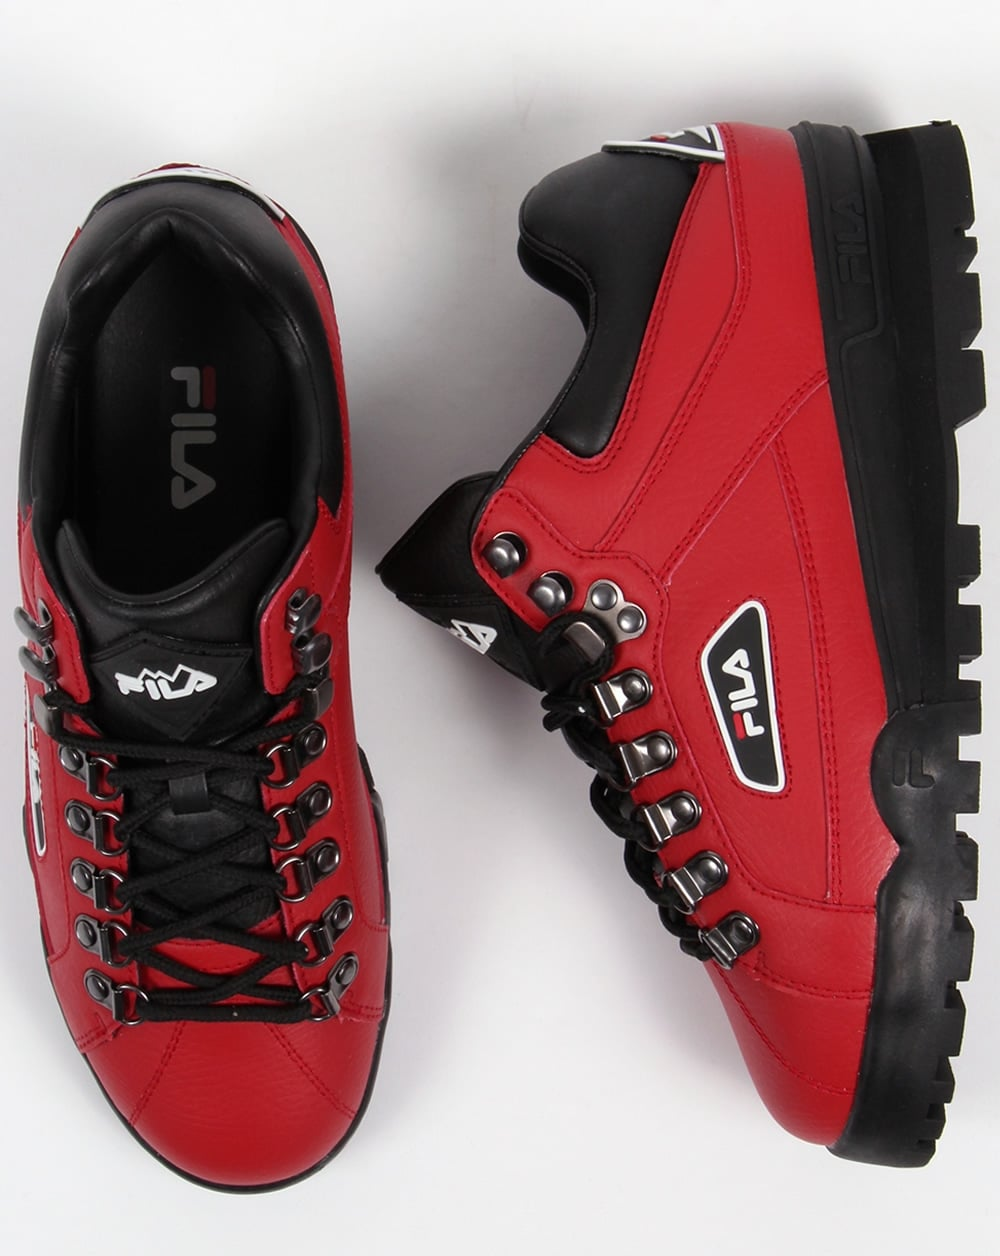 Fila Vintage Trailblazer Boots Red,leather,hiking,mens, Biking